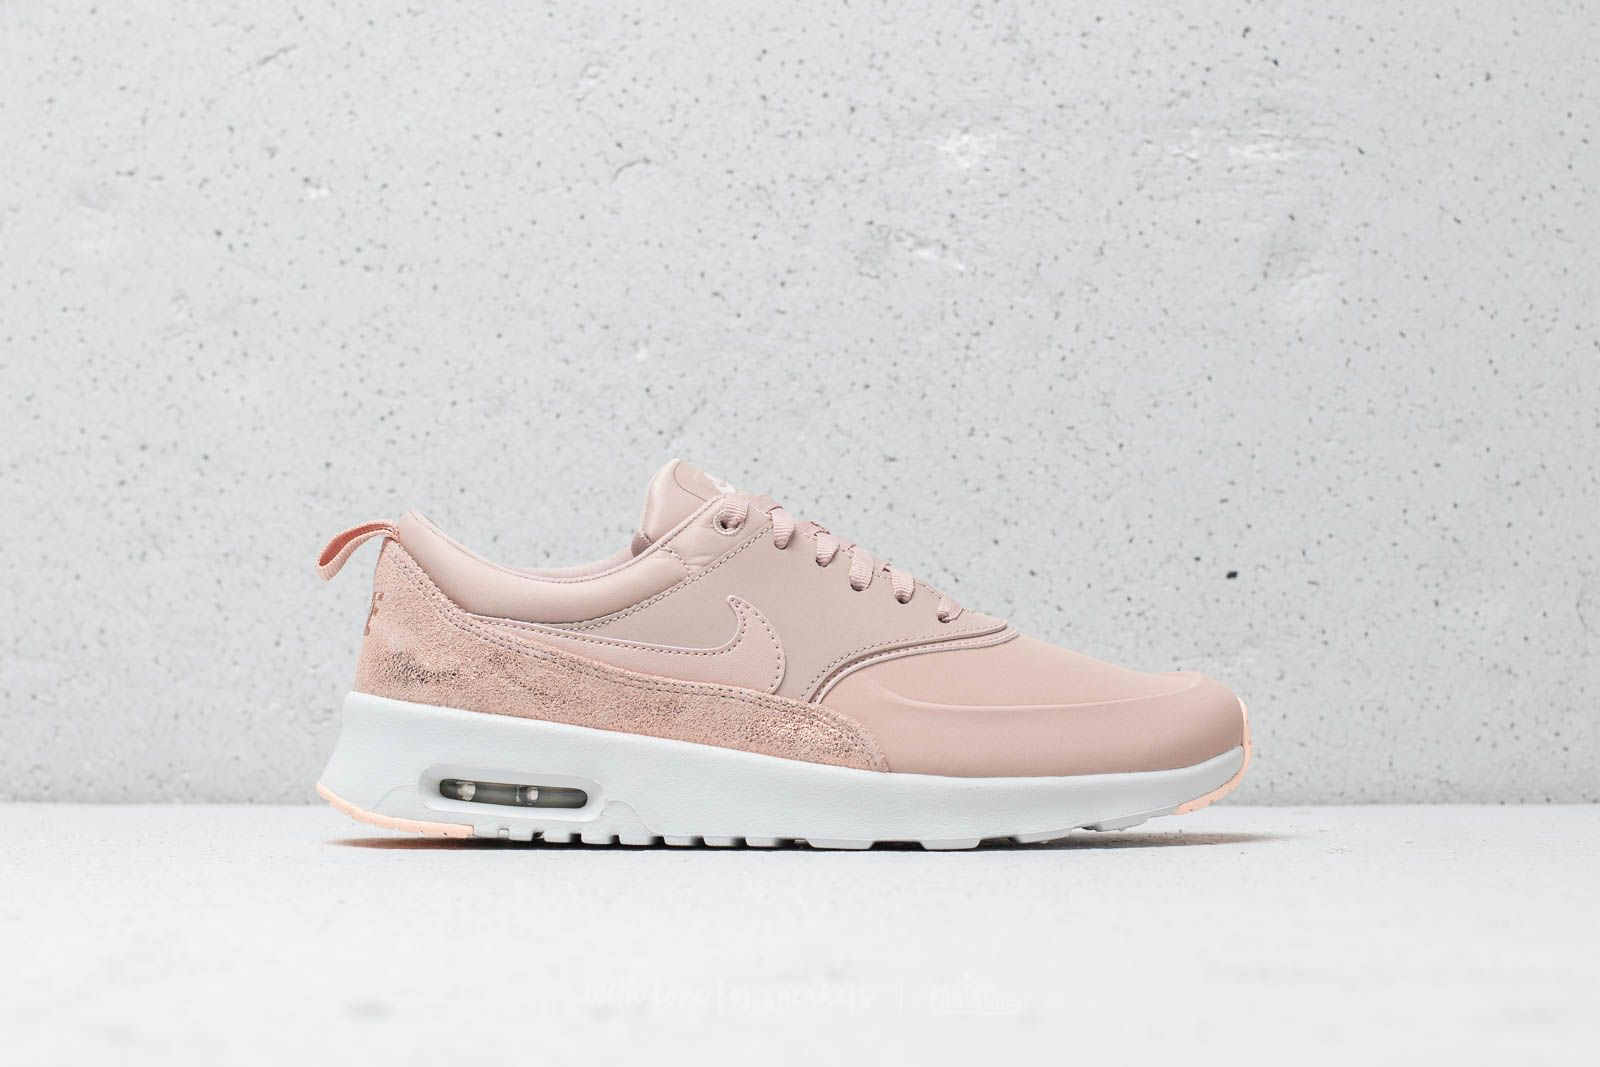 separation shoes 2b63d 5bd8b Nike Wmns Air Max Thea Premium Particle Beige  Particle Beige at a great  price 128